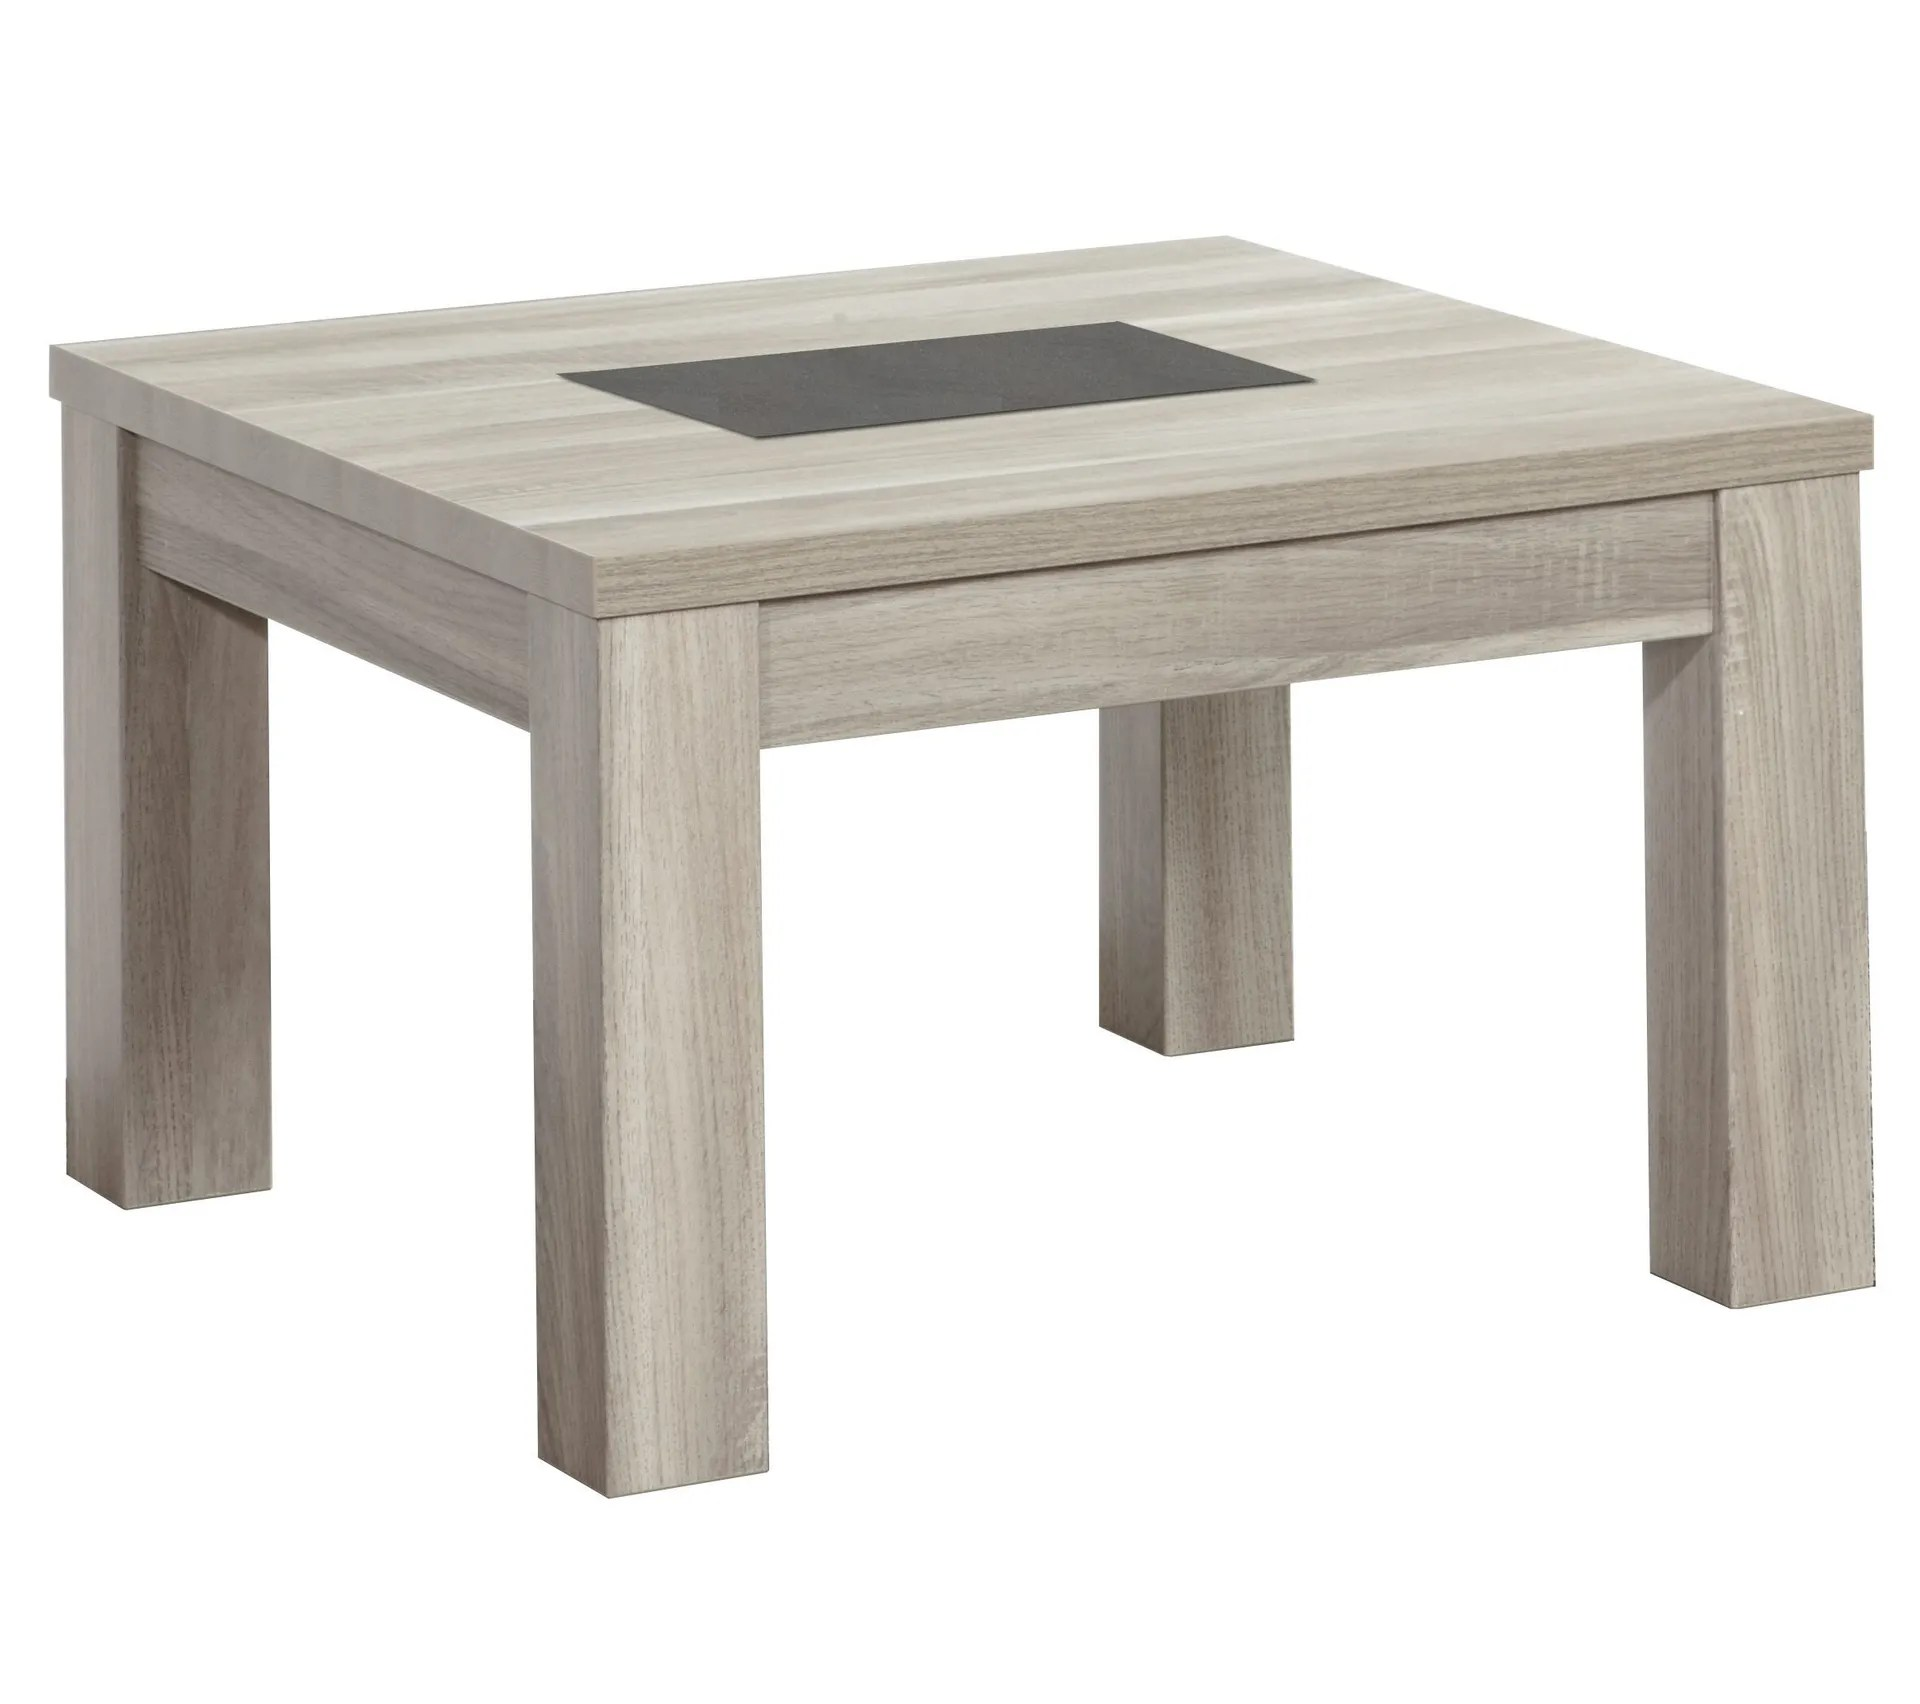 table basse carree stone chene gris